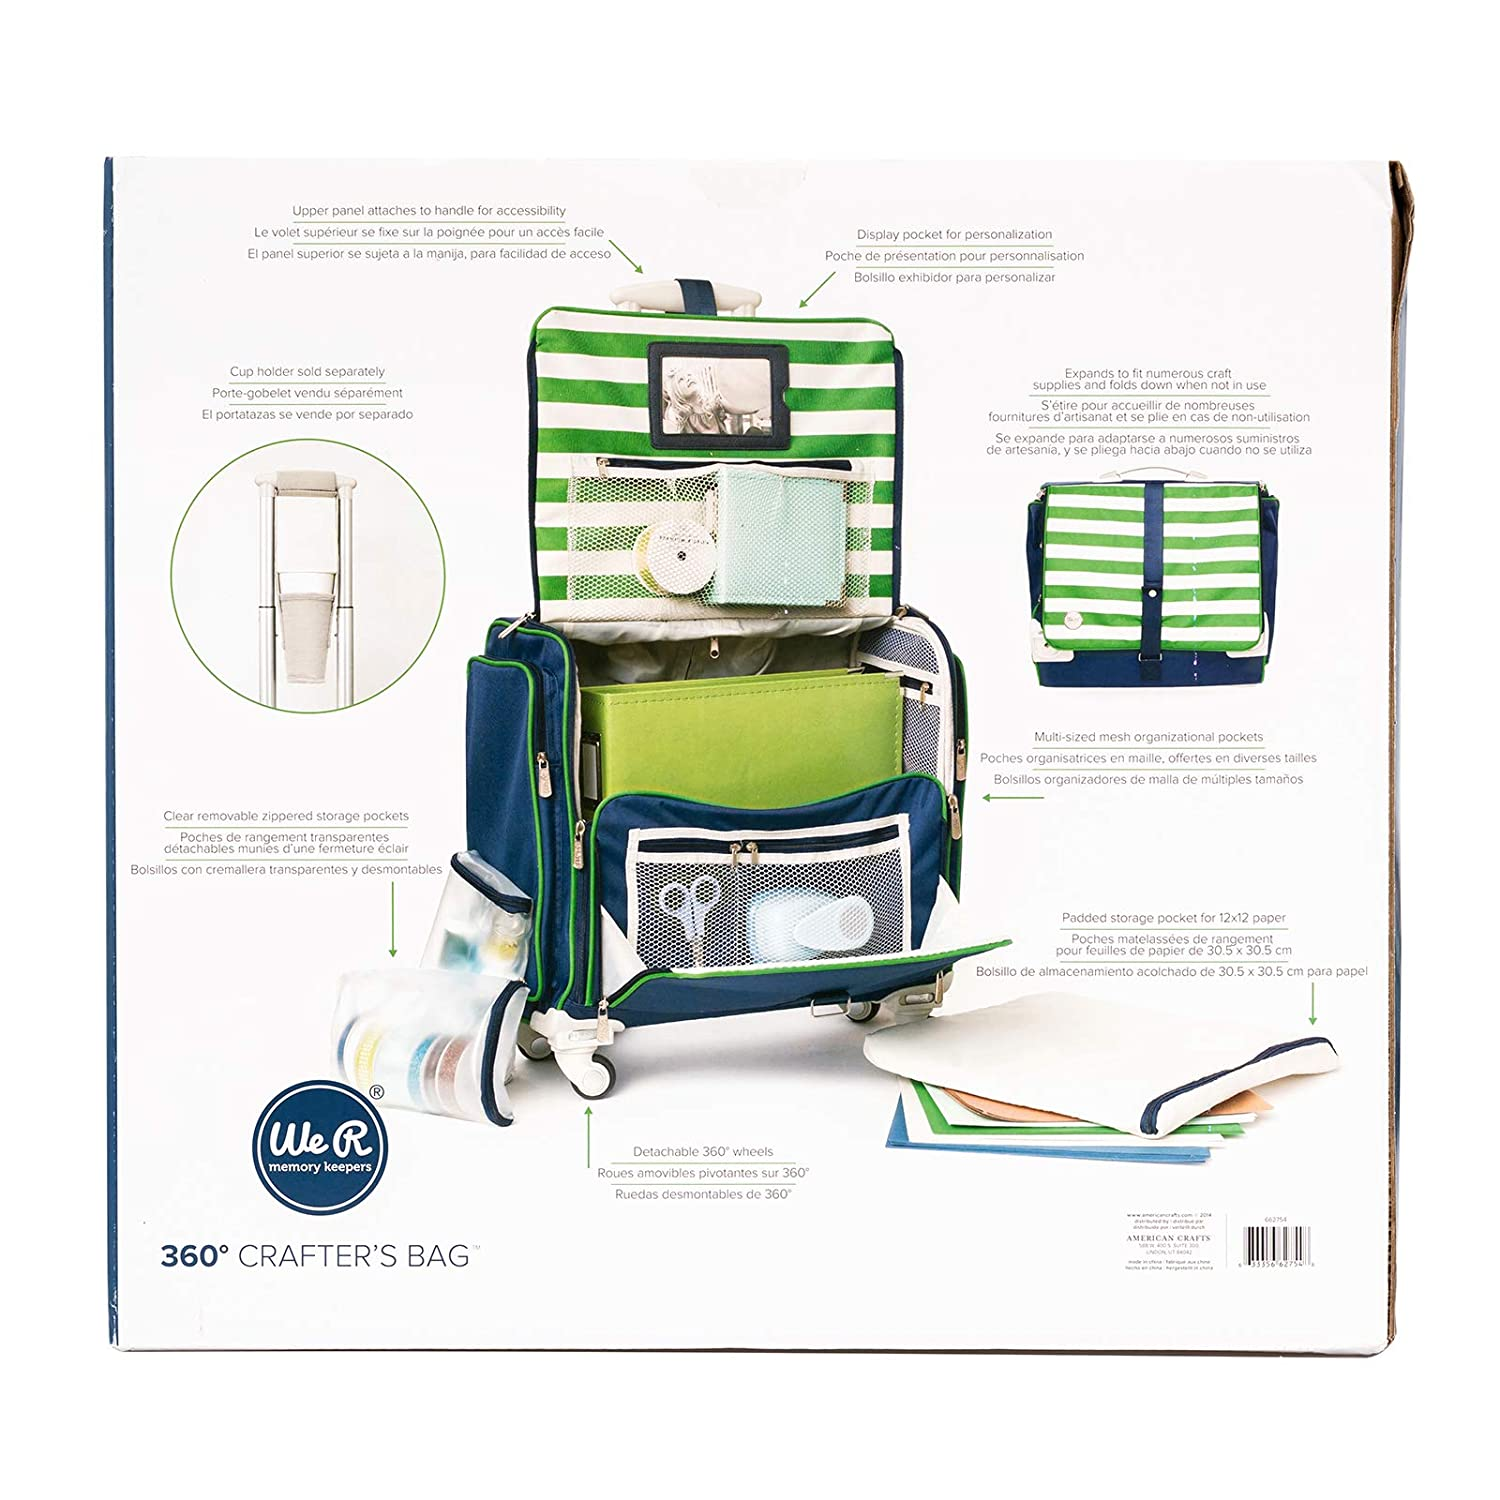 Amazon.com: 360-Degree Fold Up Crafters Bag by We R Memory Keepers | Navy & Green